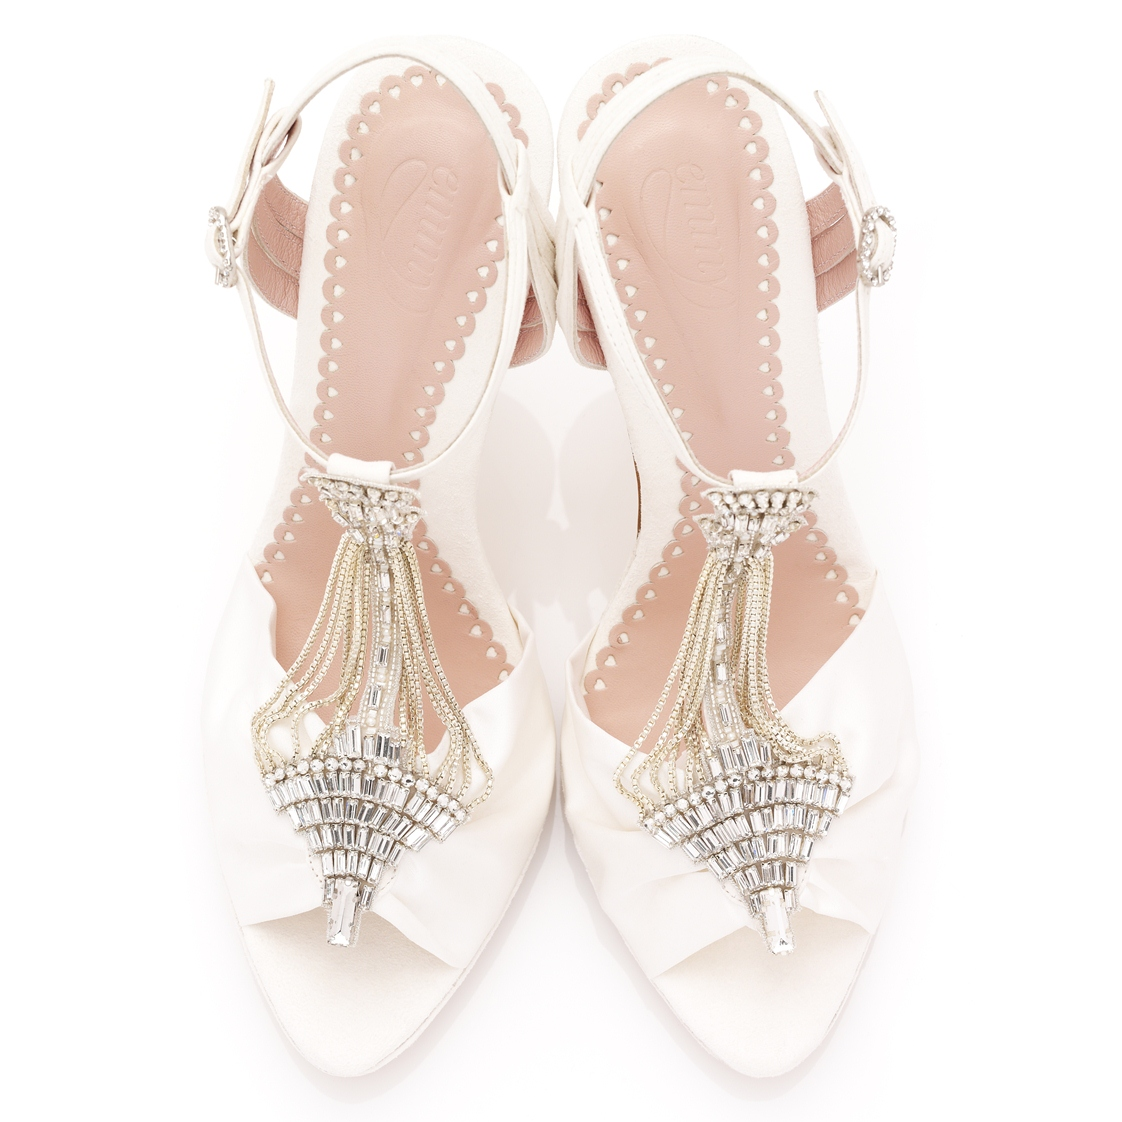 Cece from the Celeste Collection by Emmy Shoes